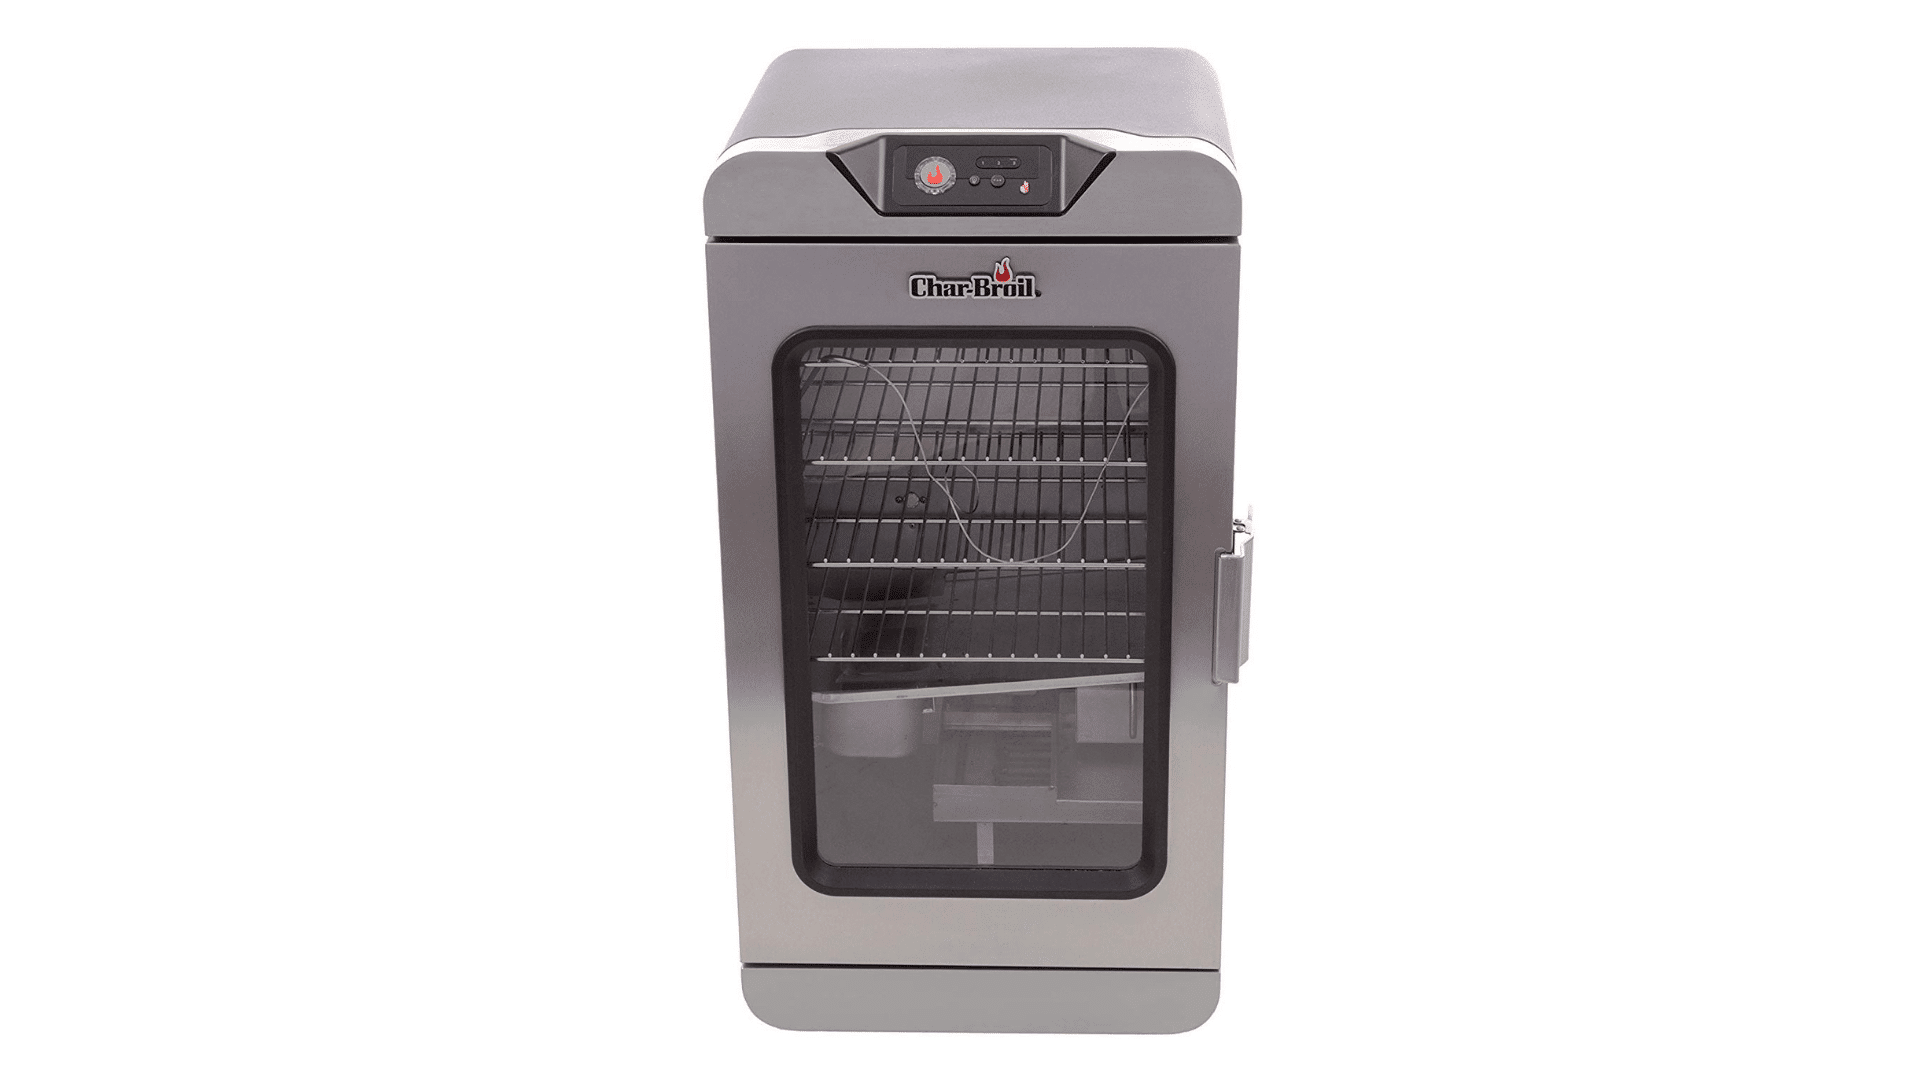 product image of Char-Broil Digital Electric Smoker with SmartChef Technology